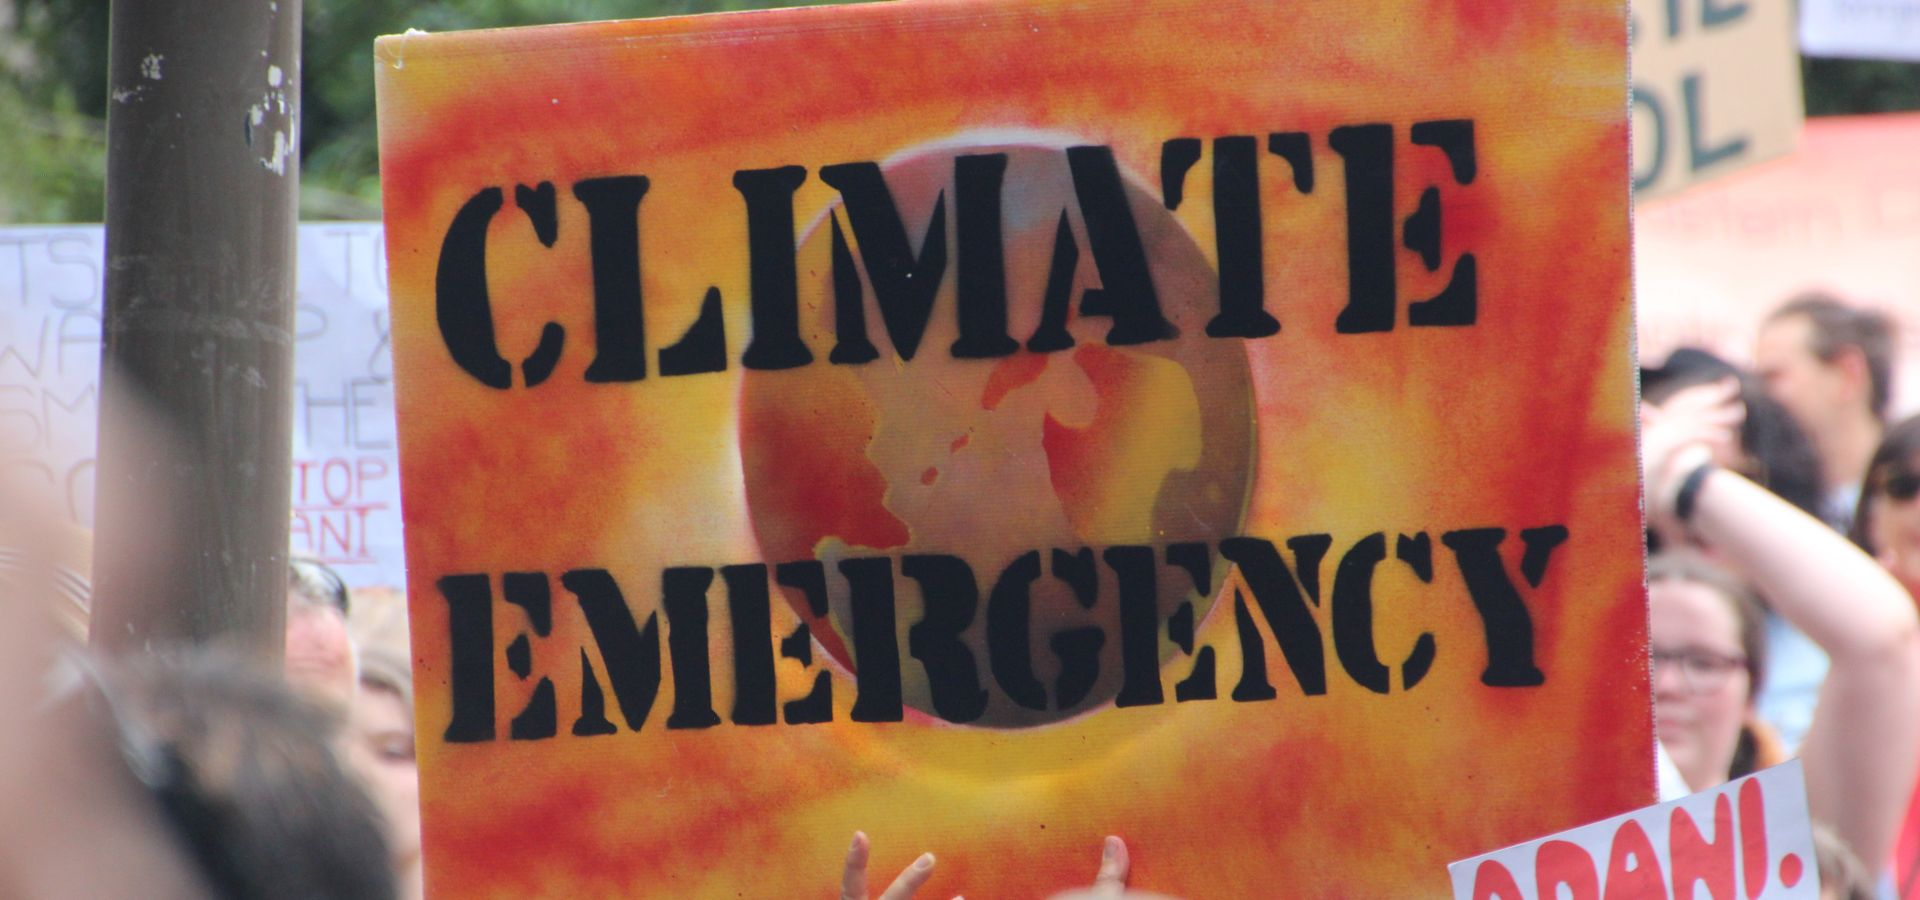 More and more people protest for rapid action against climate change